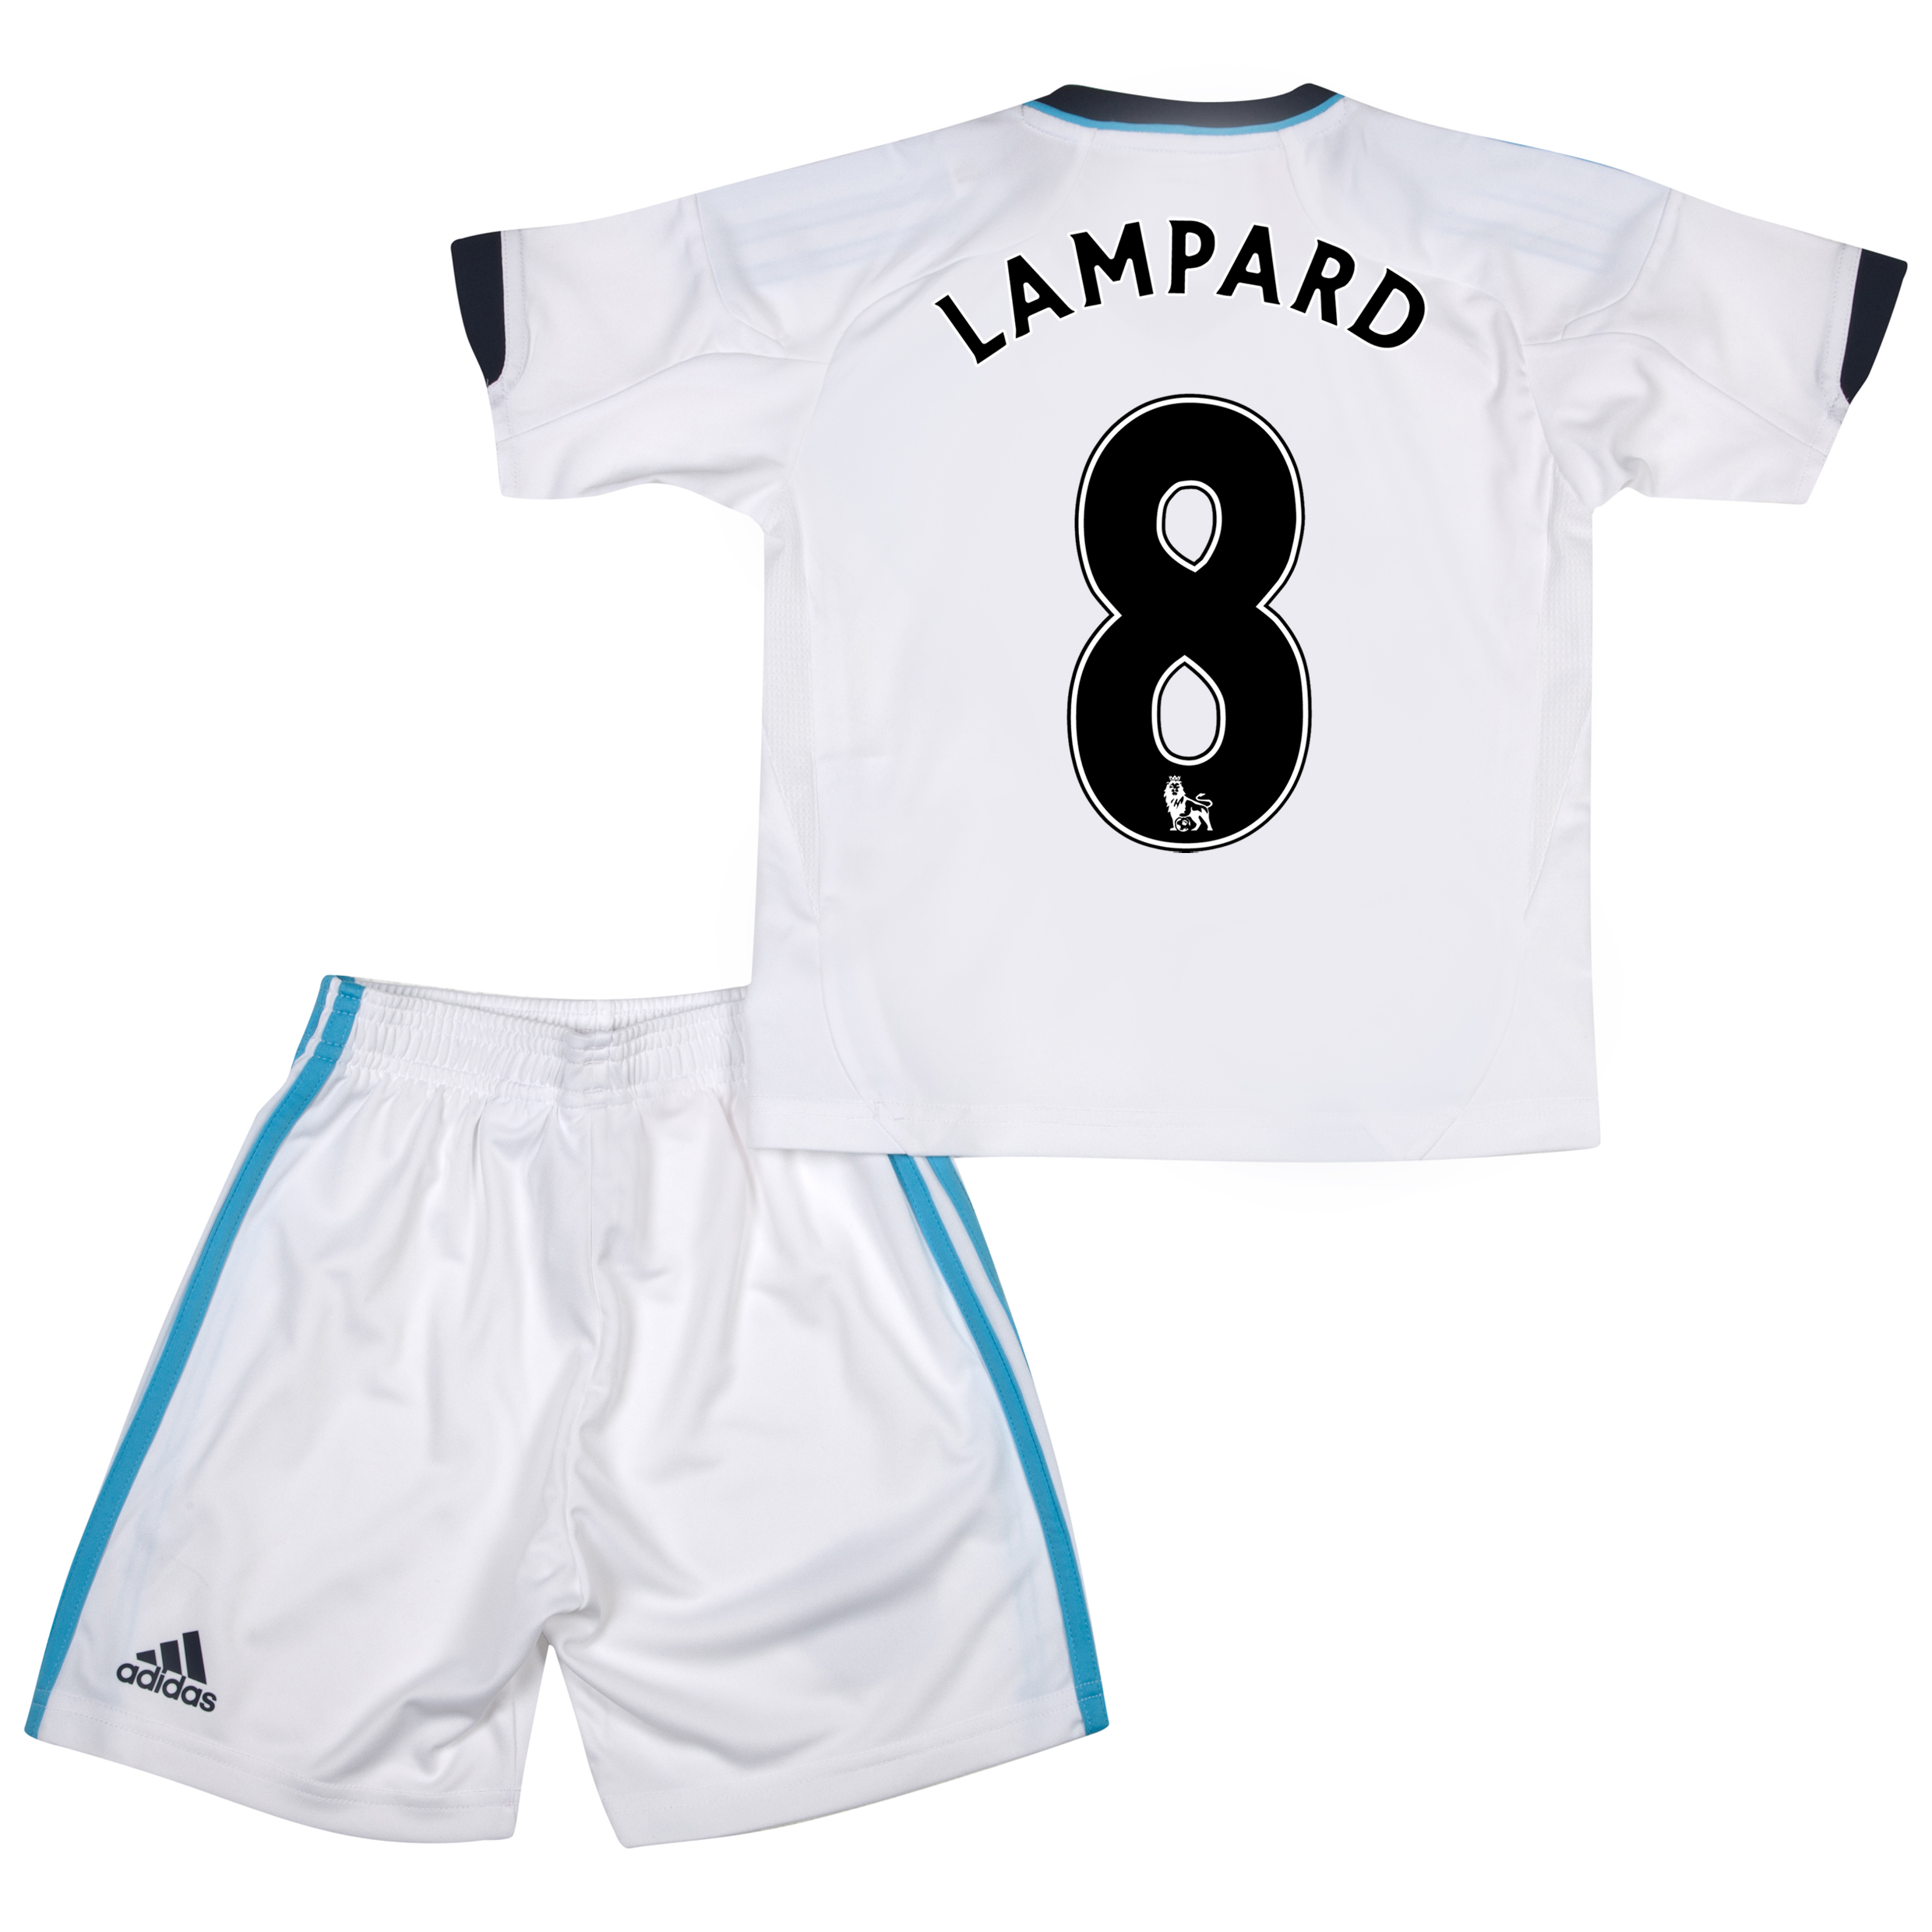 Chelsea Away Mini Kit 2012/13 with Lampard 8 printing